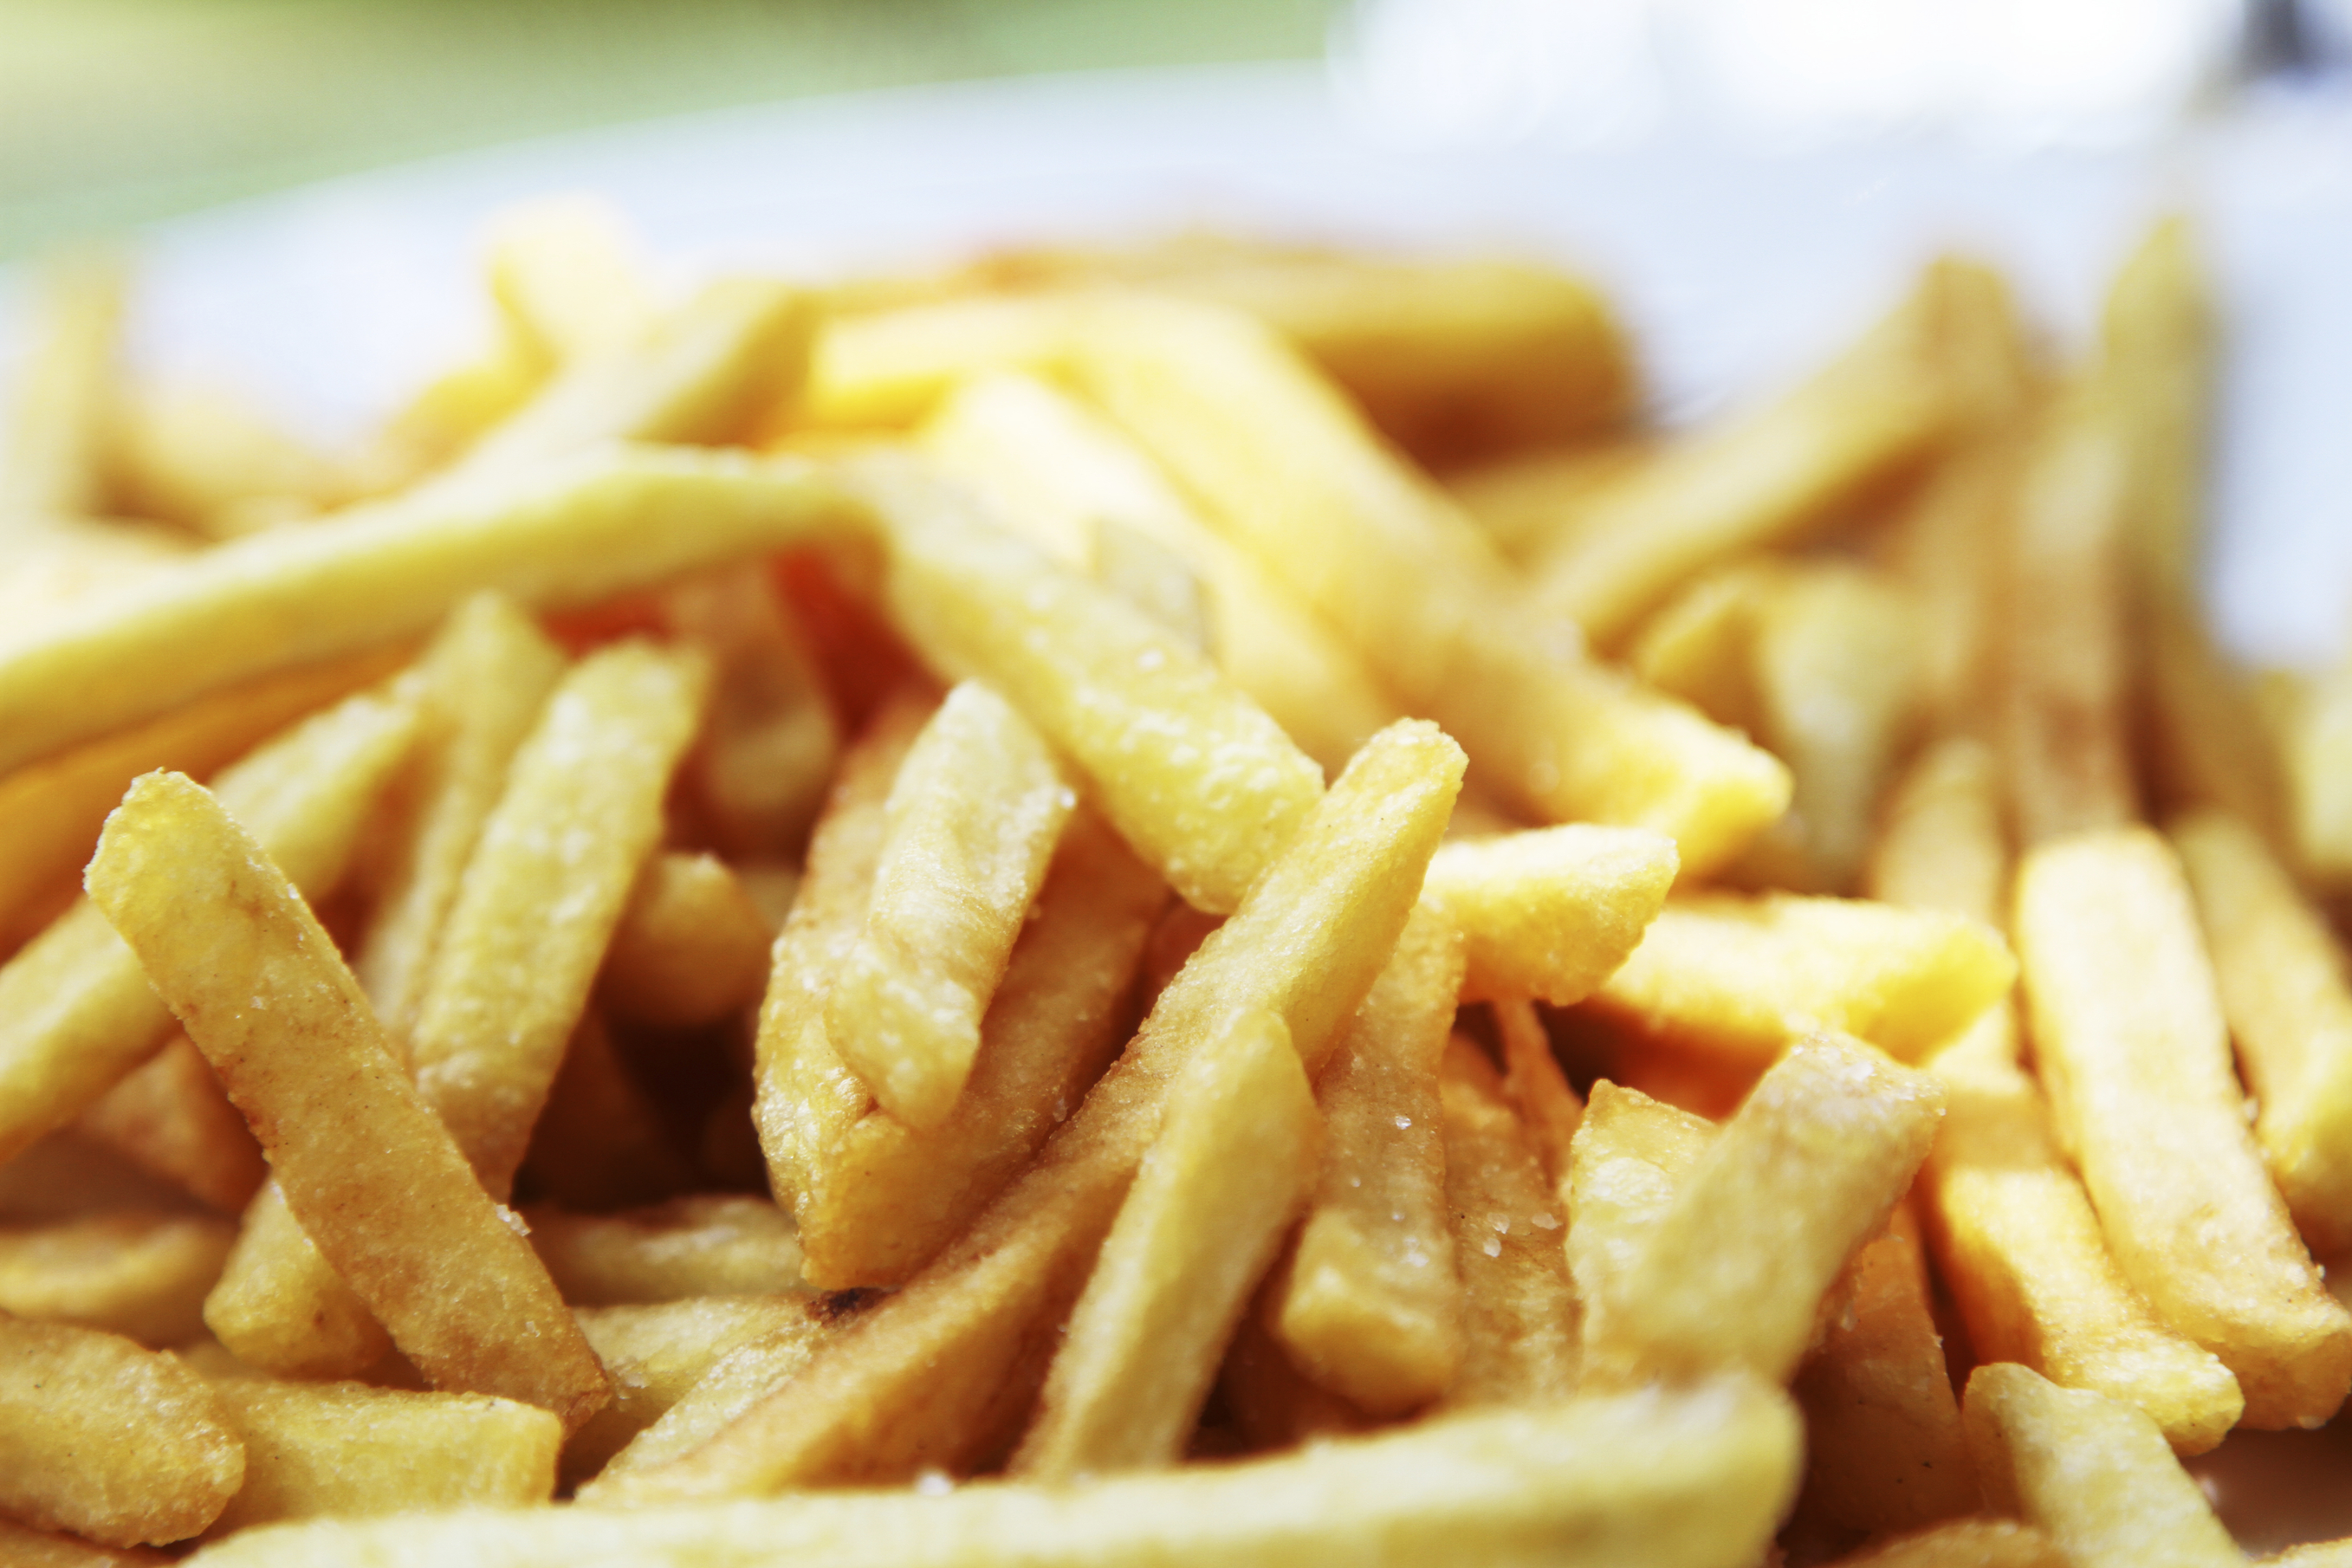 Government heavily subsidizes junk food, report suggests